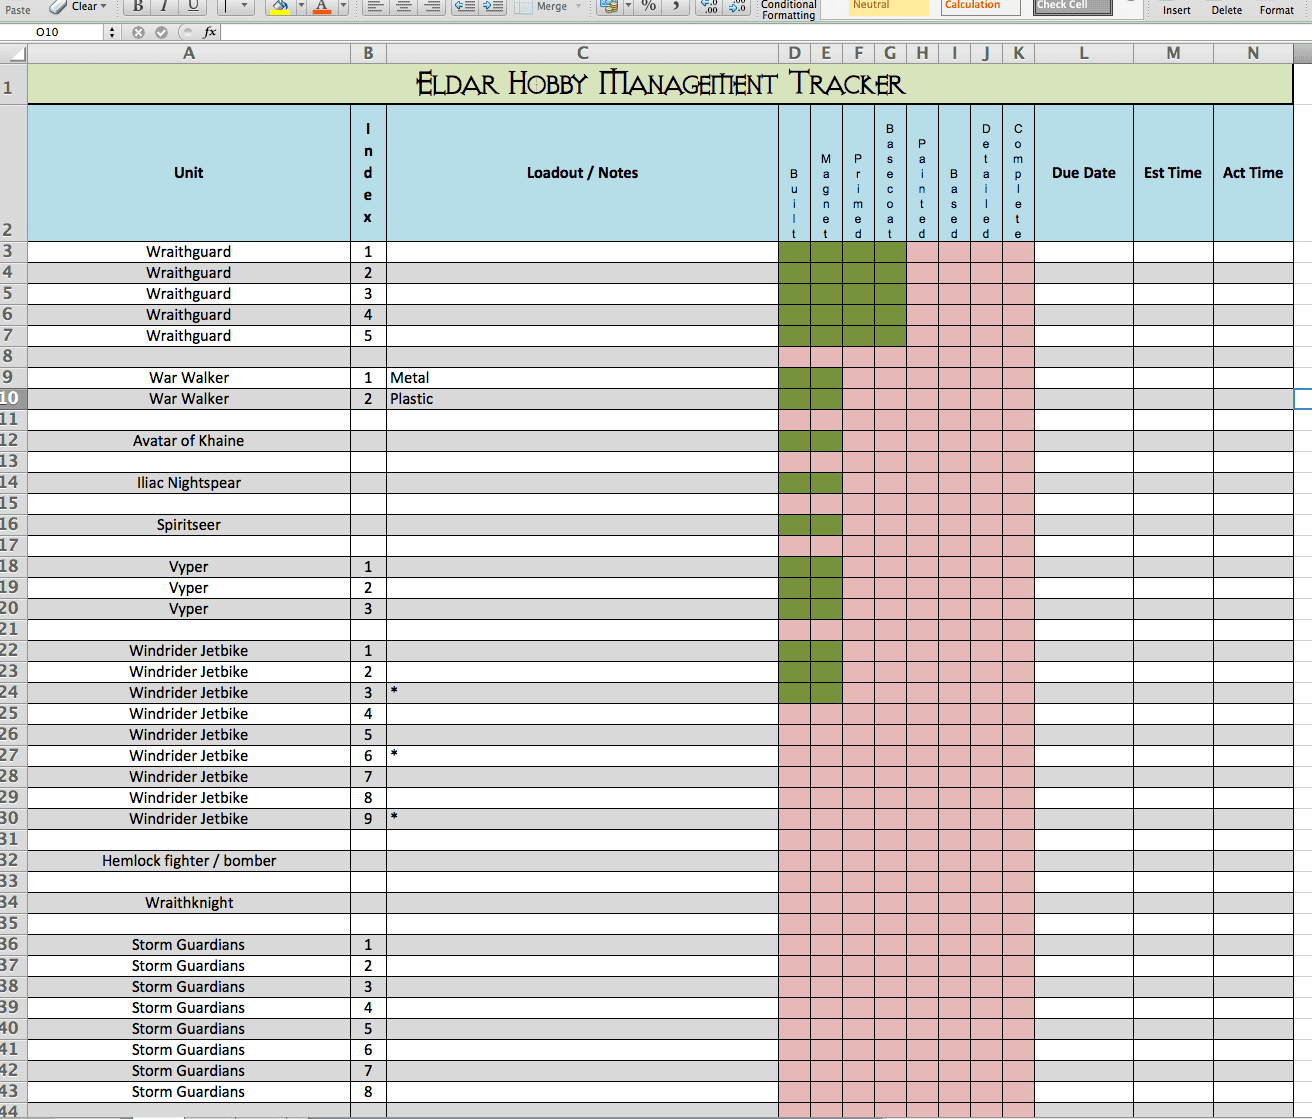 Tracking Spreadsheet Template Excel Sales Tracking Spreadsheet Template Spreadsheet Templates for Busines Spreadsheet Templates for Busines Lead Tracking Template